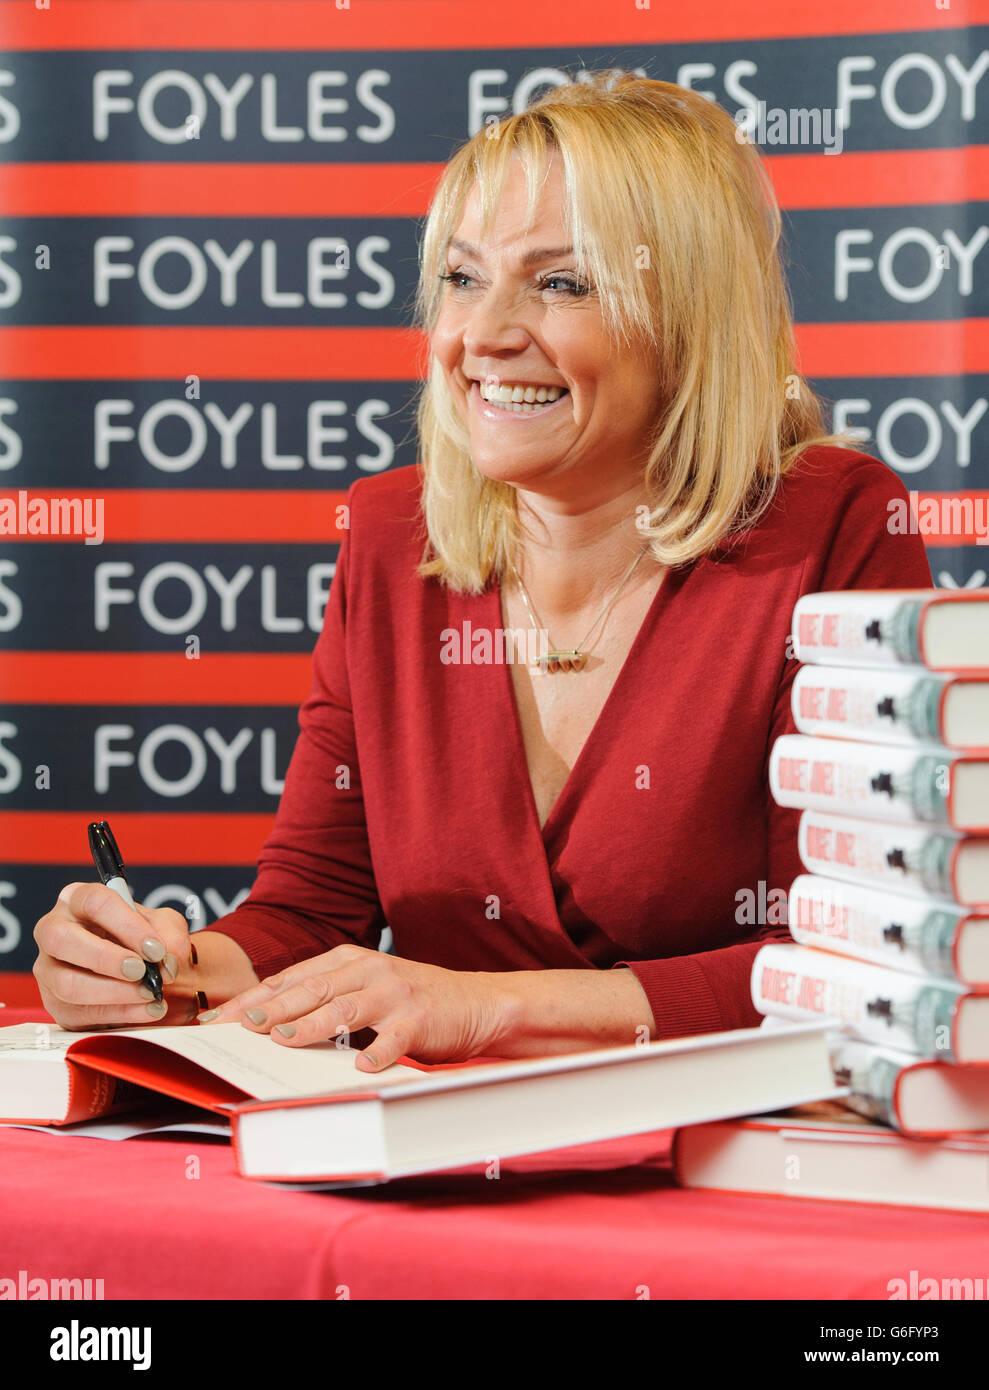 Helen Fielding 'Bridget Jones - Mad About The Boy' signing - London Stock Photo